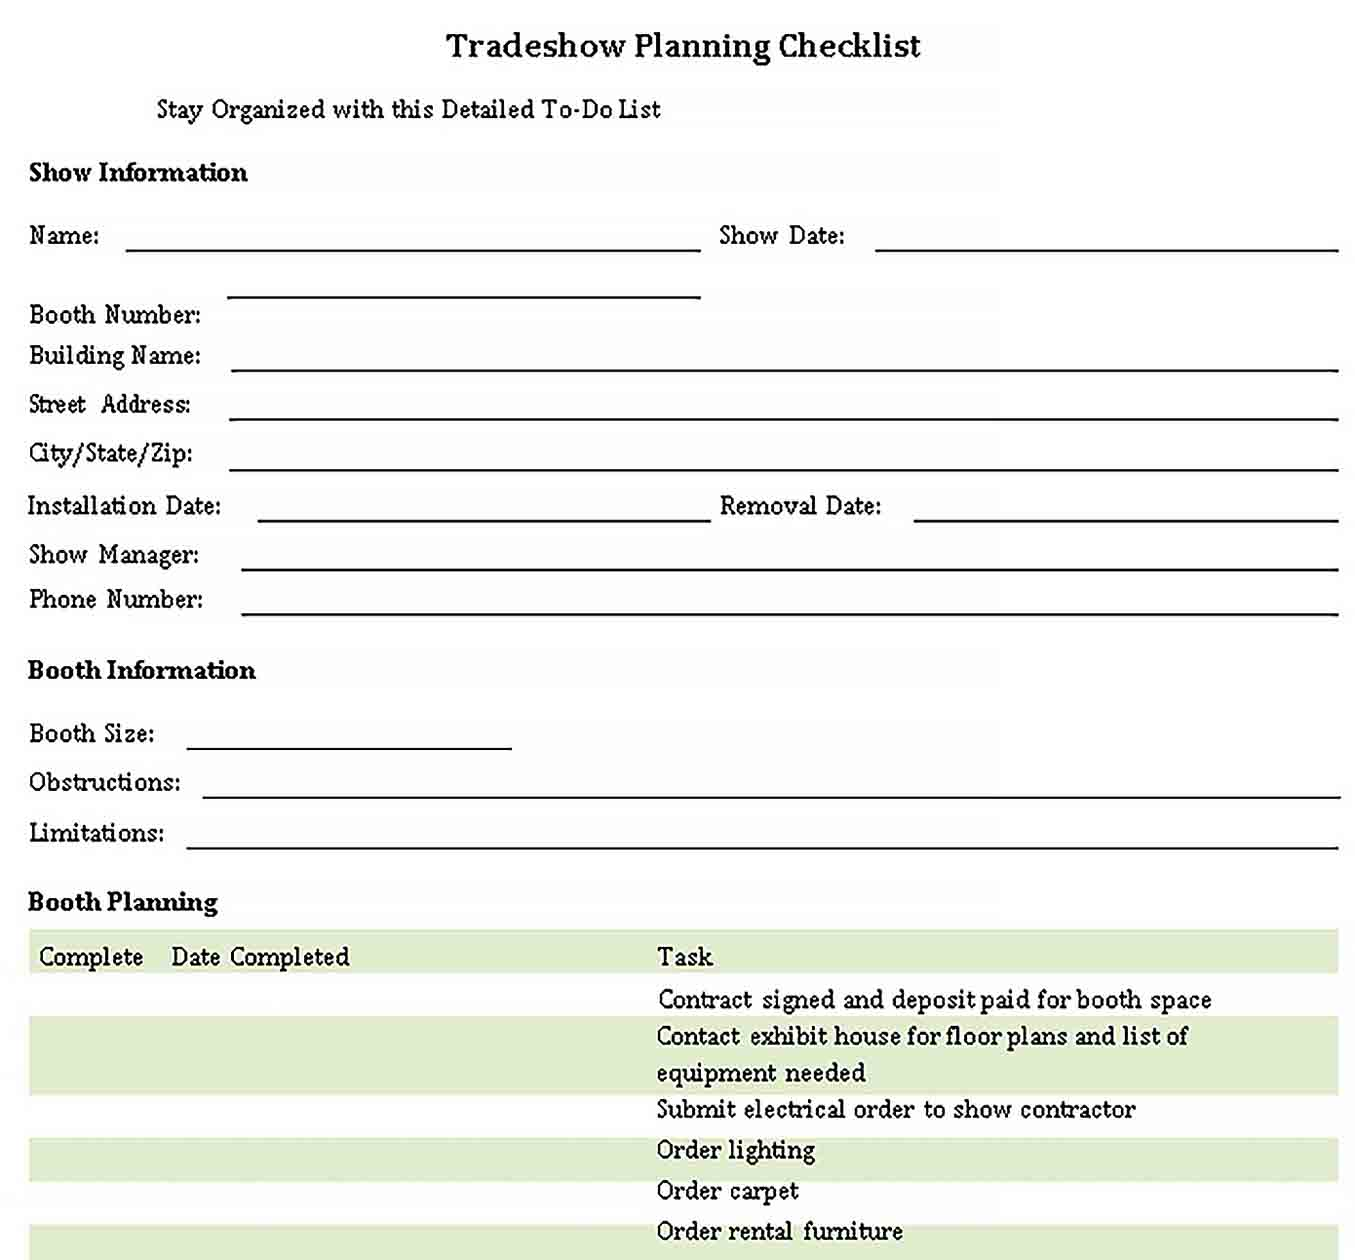 Template Basic Trade Show Planning Checklist